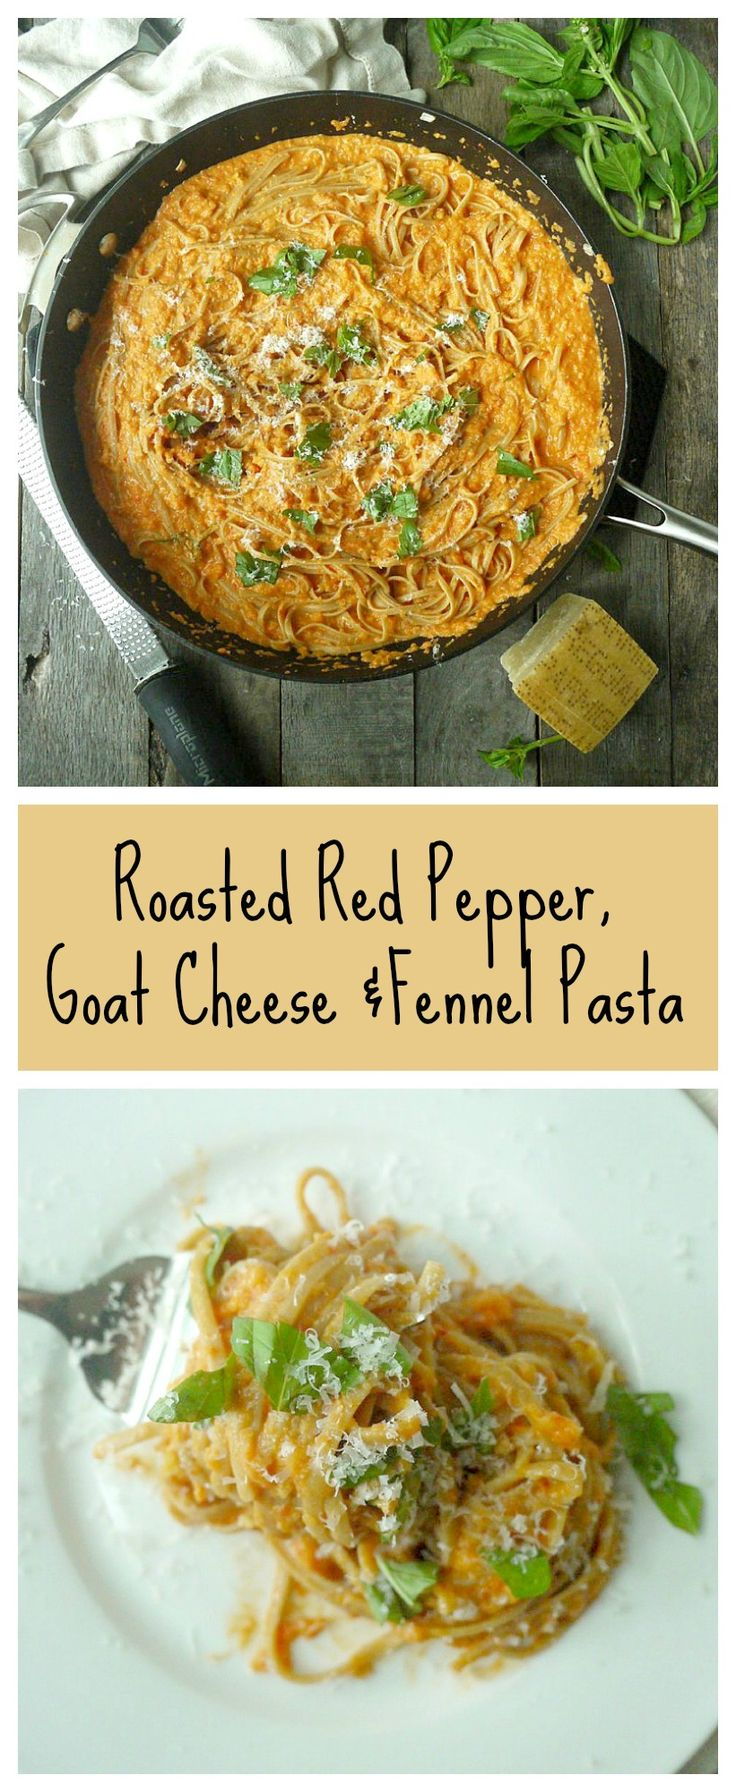 This creamy pasta is low on dairy and high on veggies! #pasta #roastedpepper